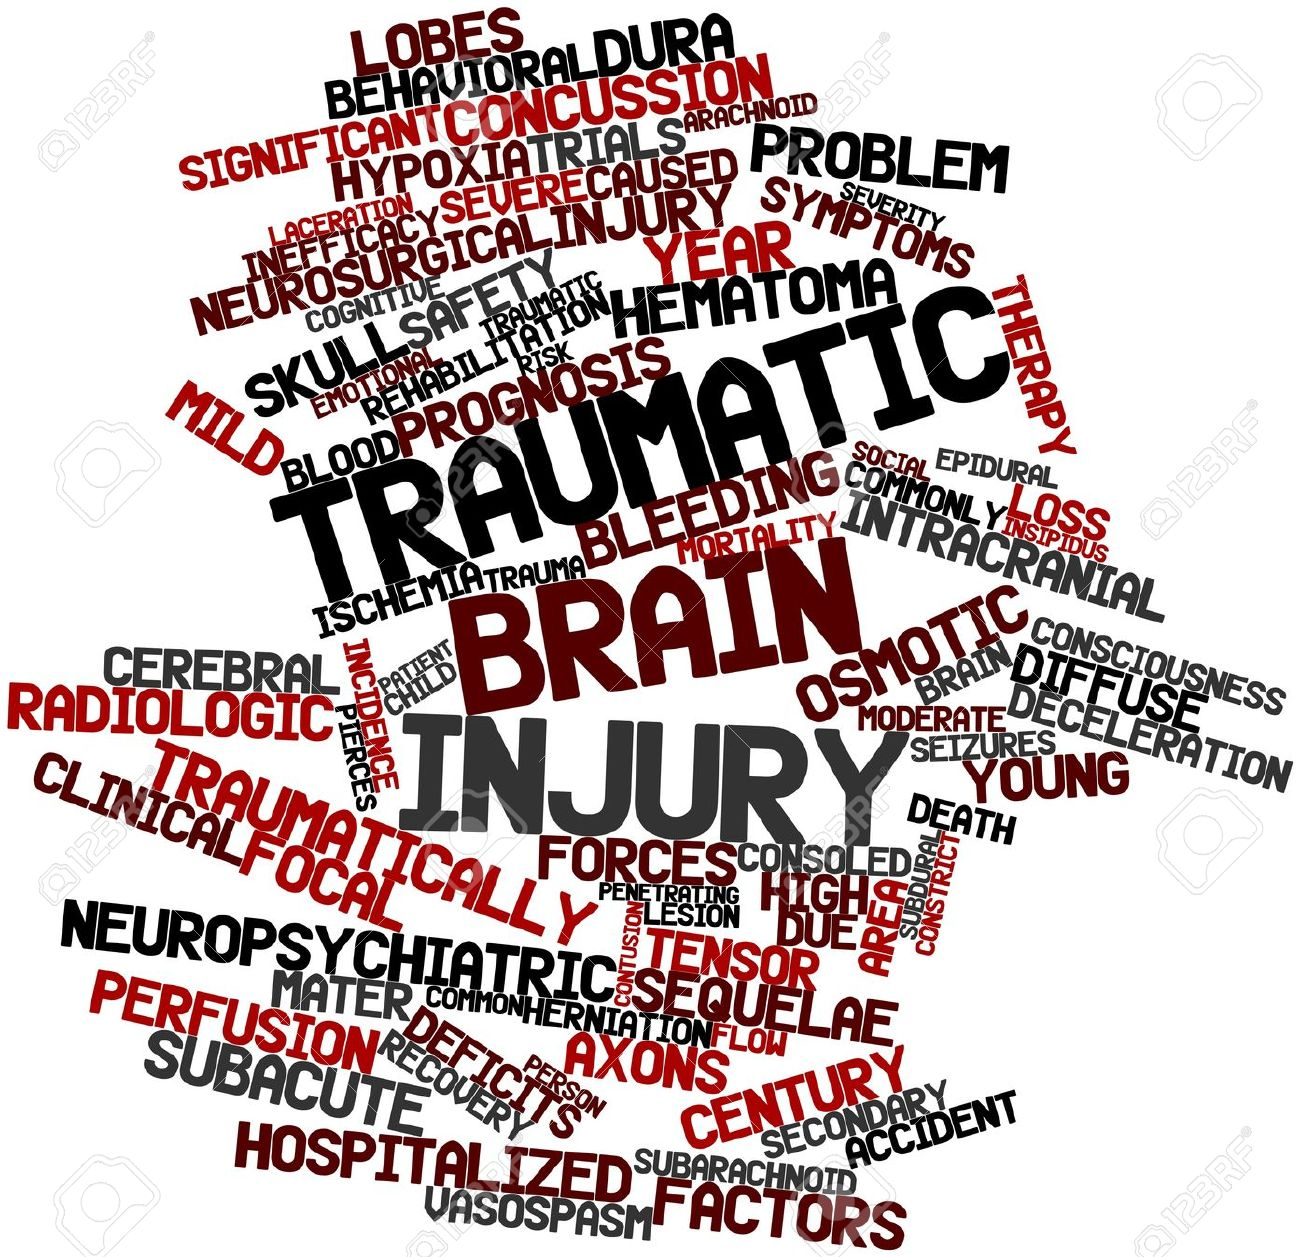 traumatic-brain-injury_02